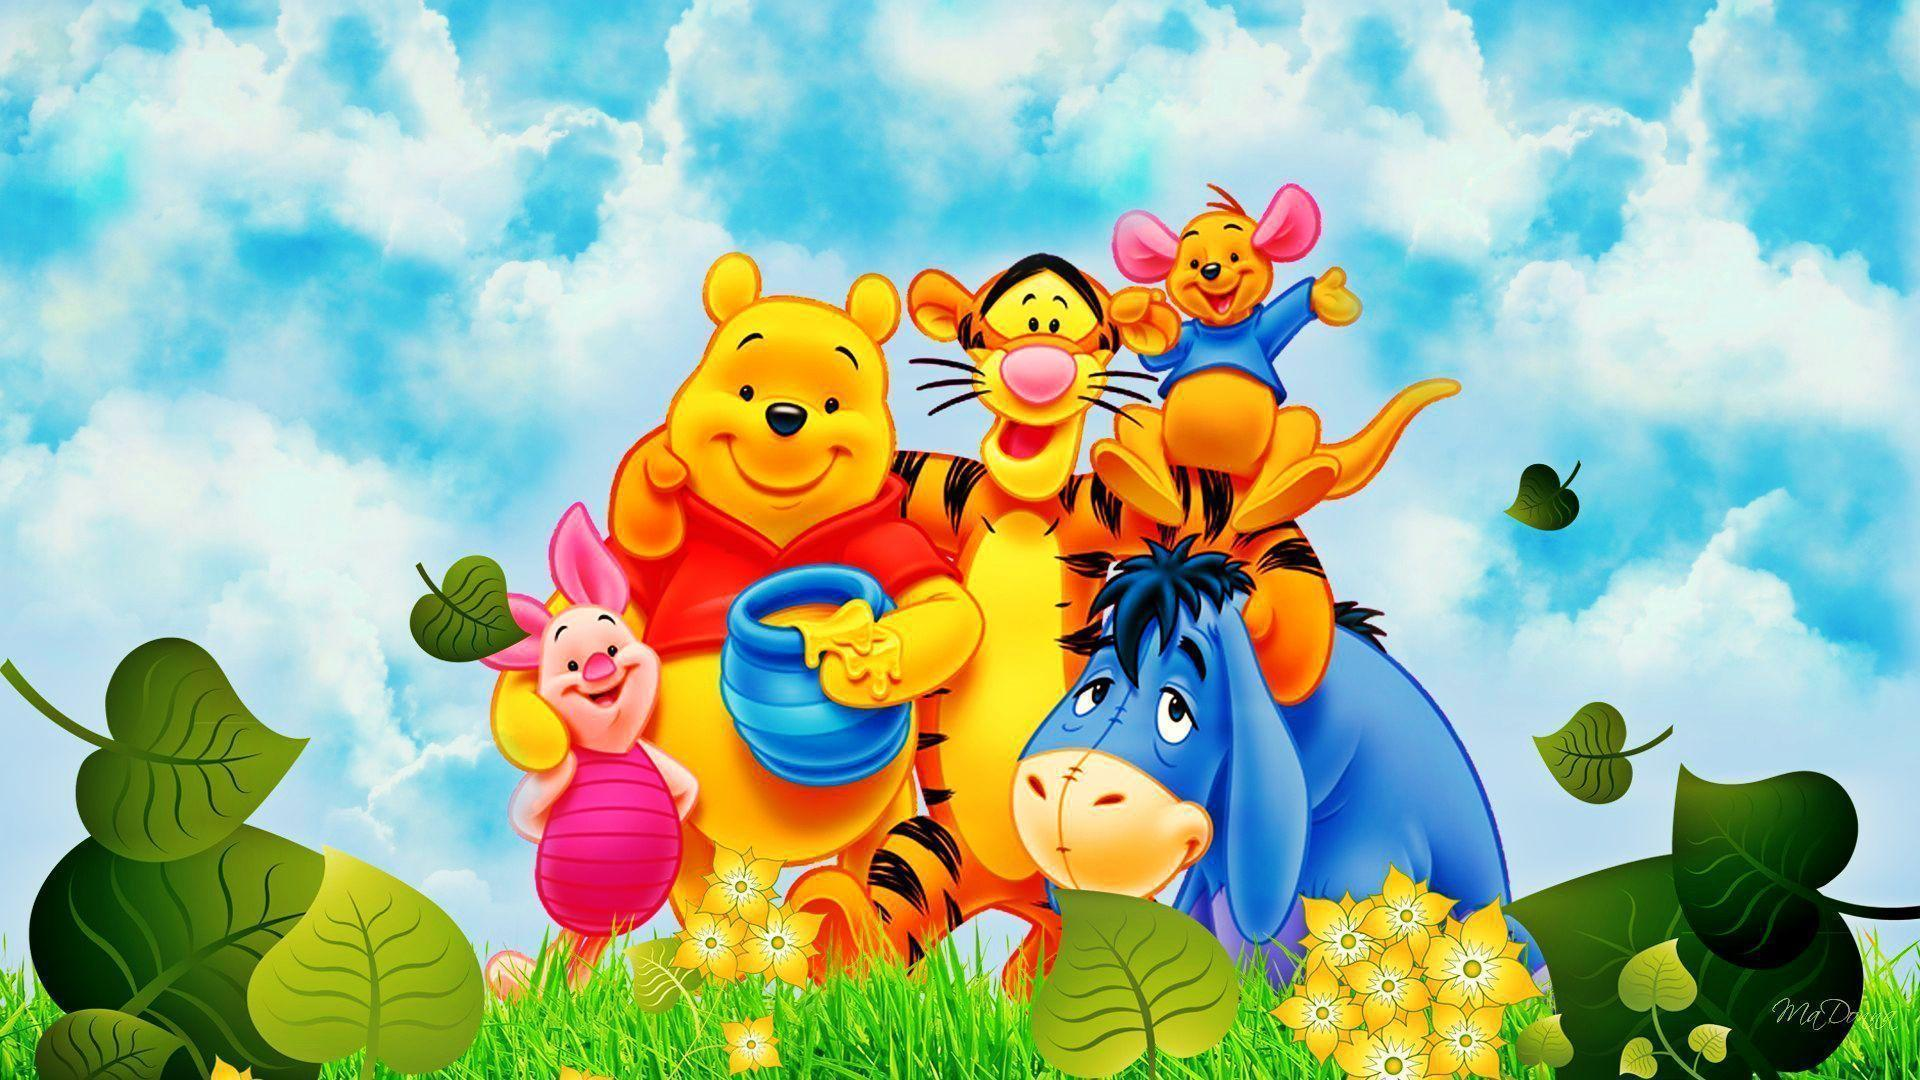 Winnie The Pooh And Friends Wallpapers Wallpaper Cave